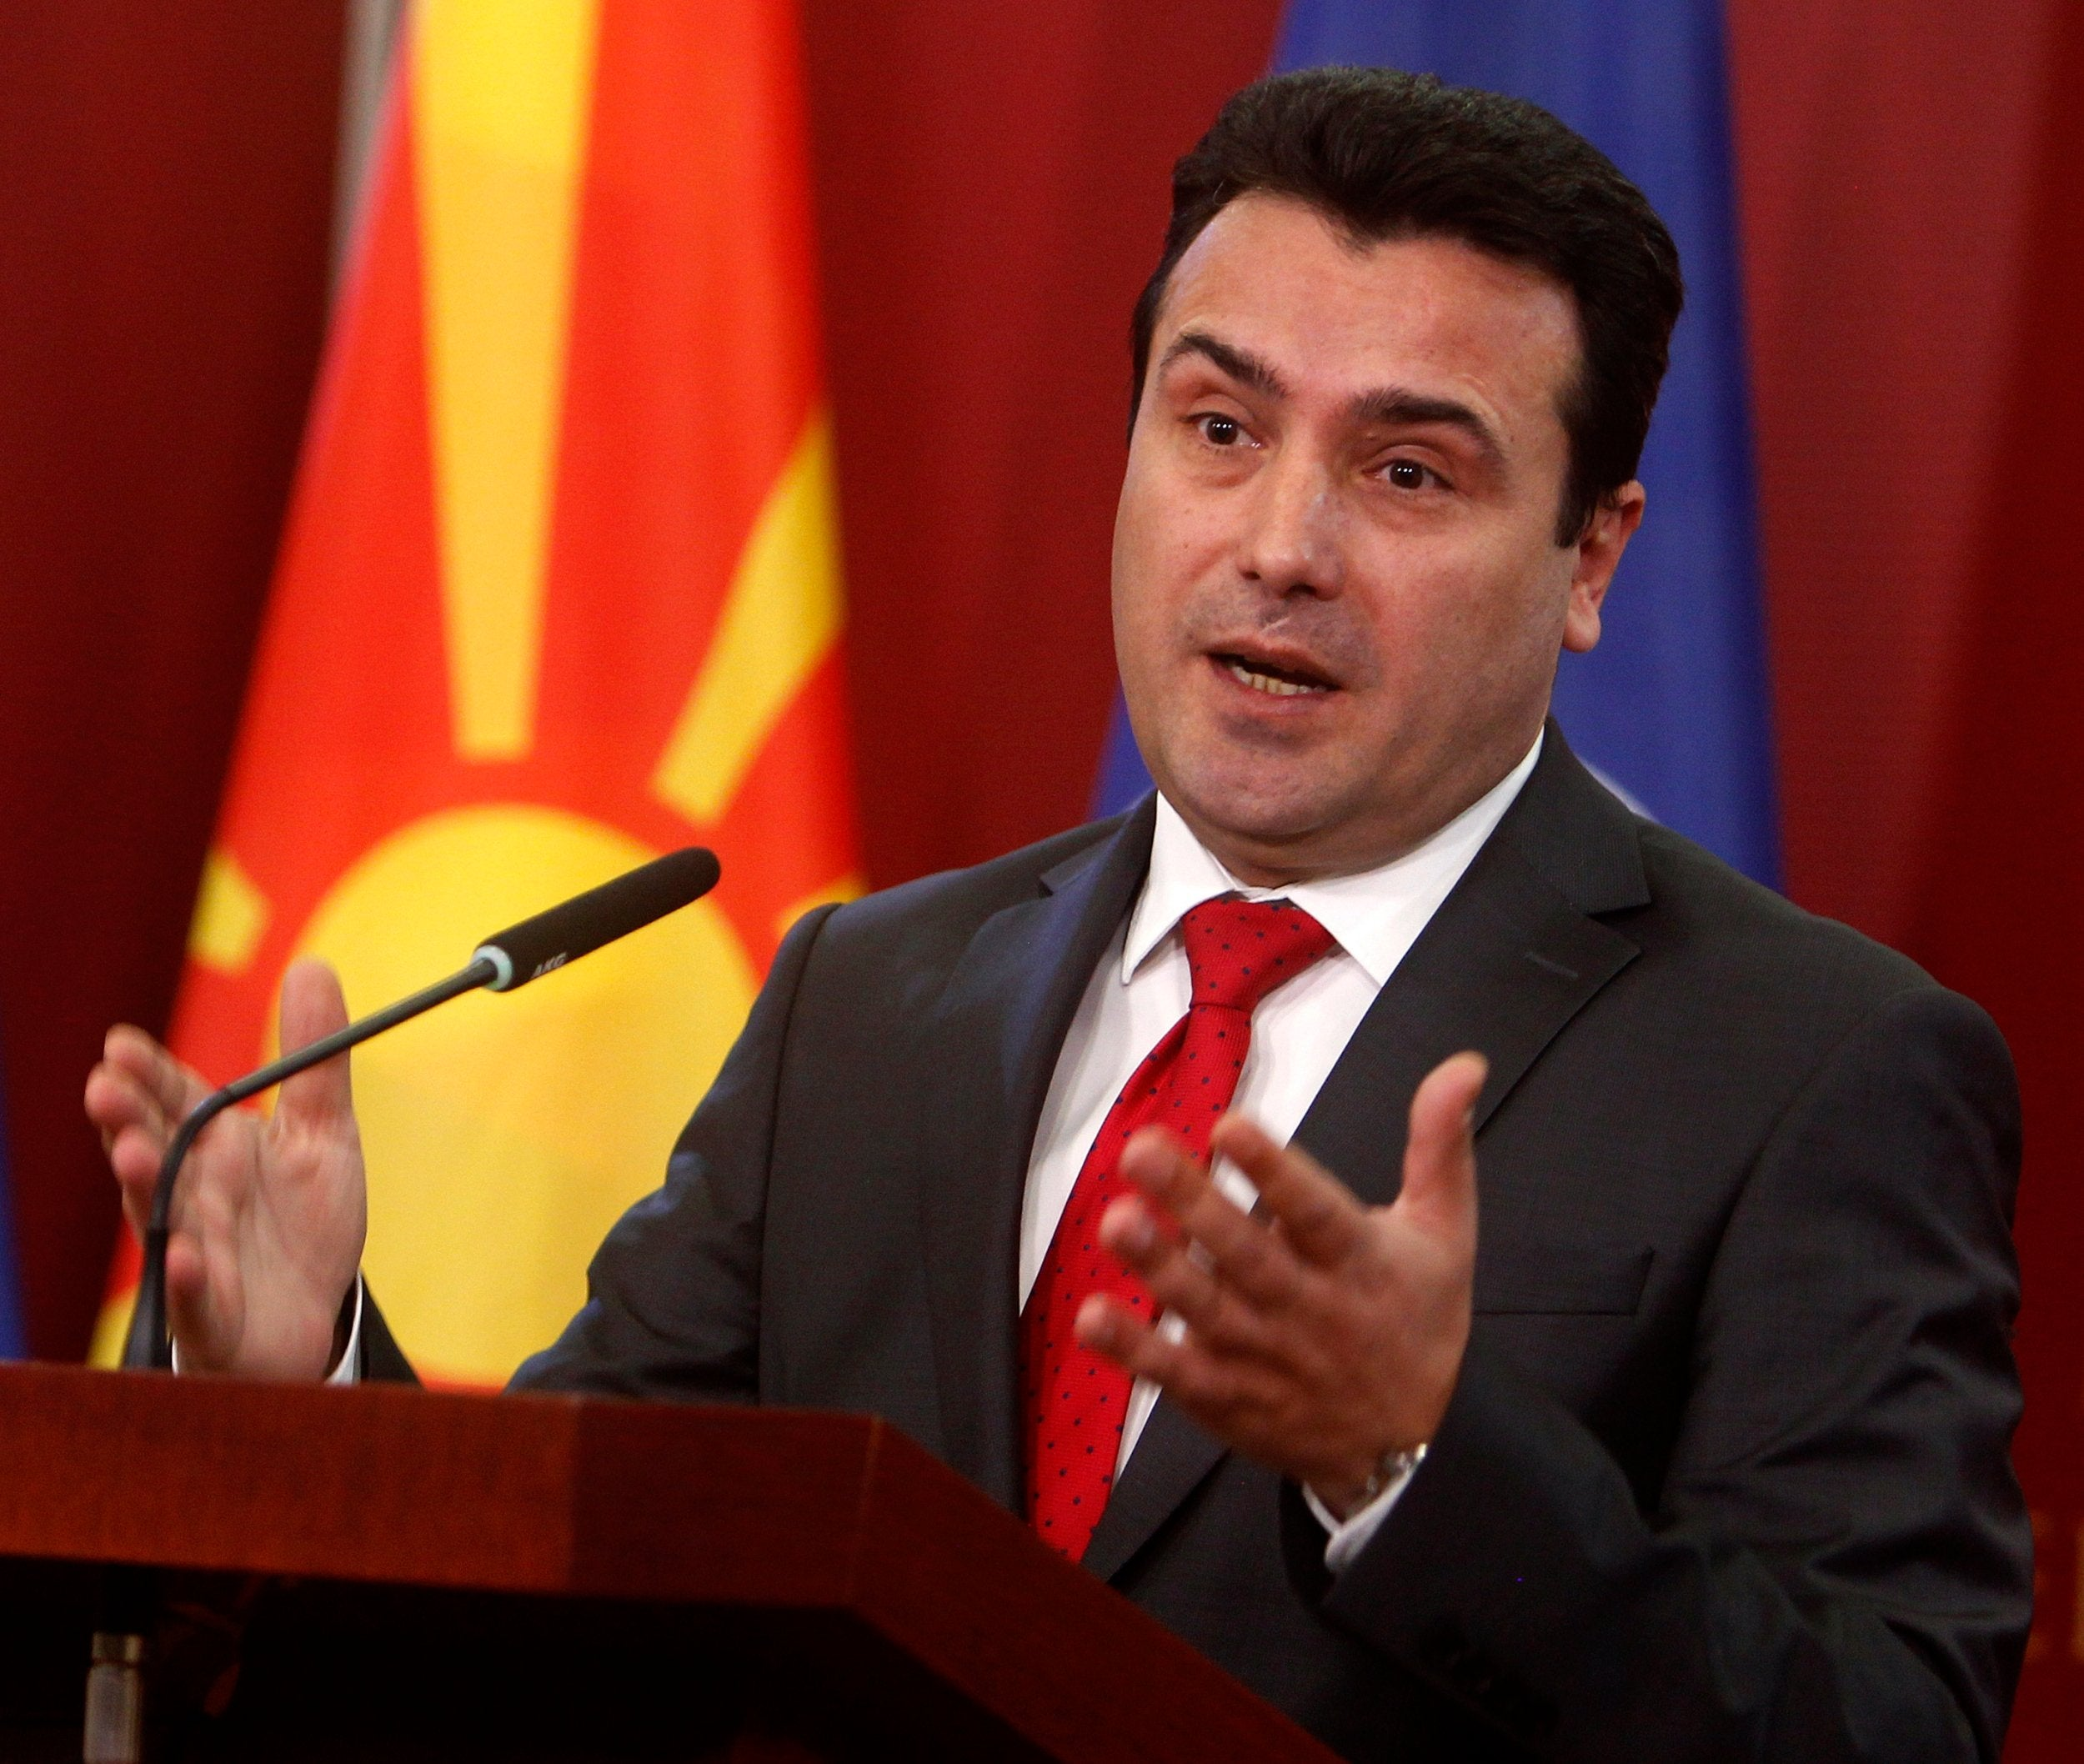 Colorado Independent: Macedonia Approves Historical Deal With Greece To Rename